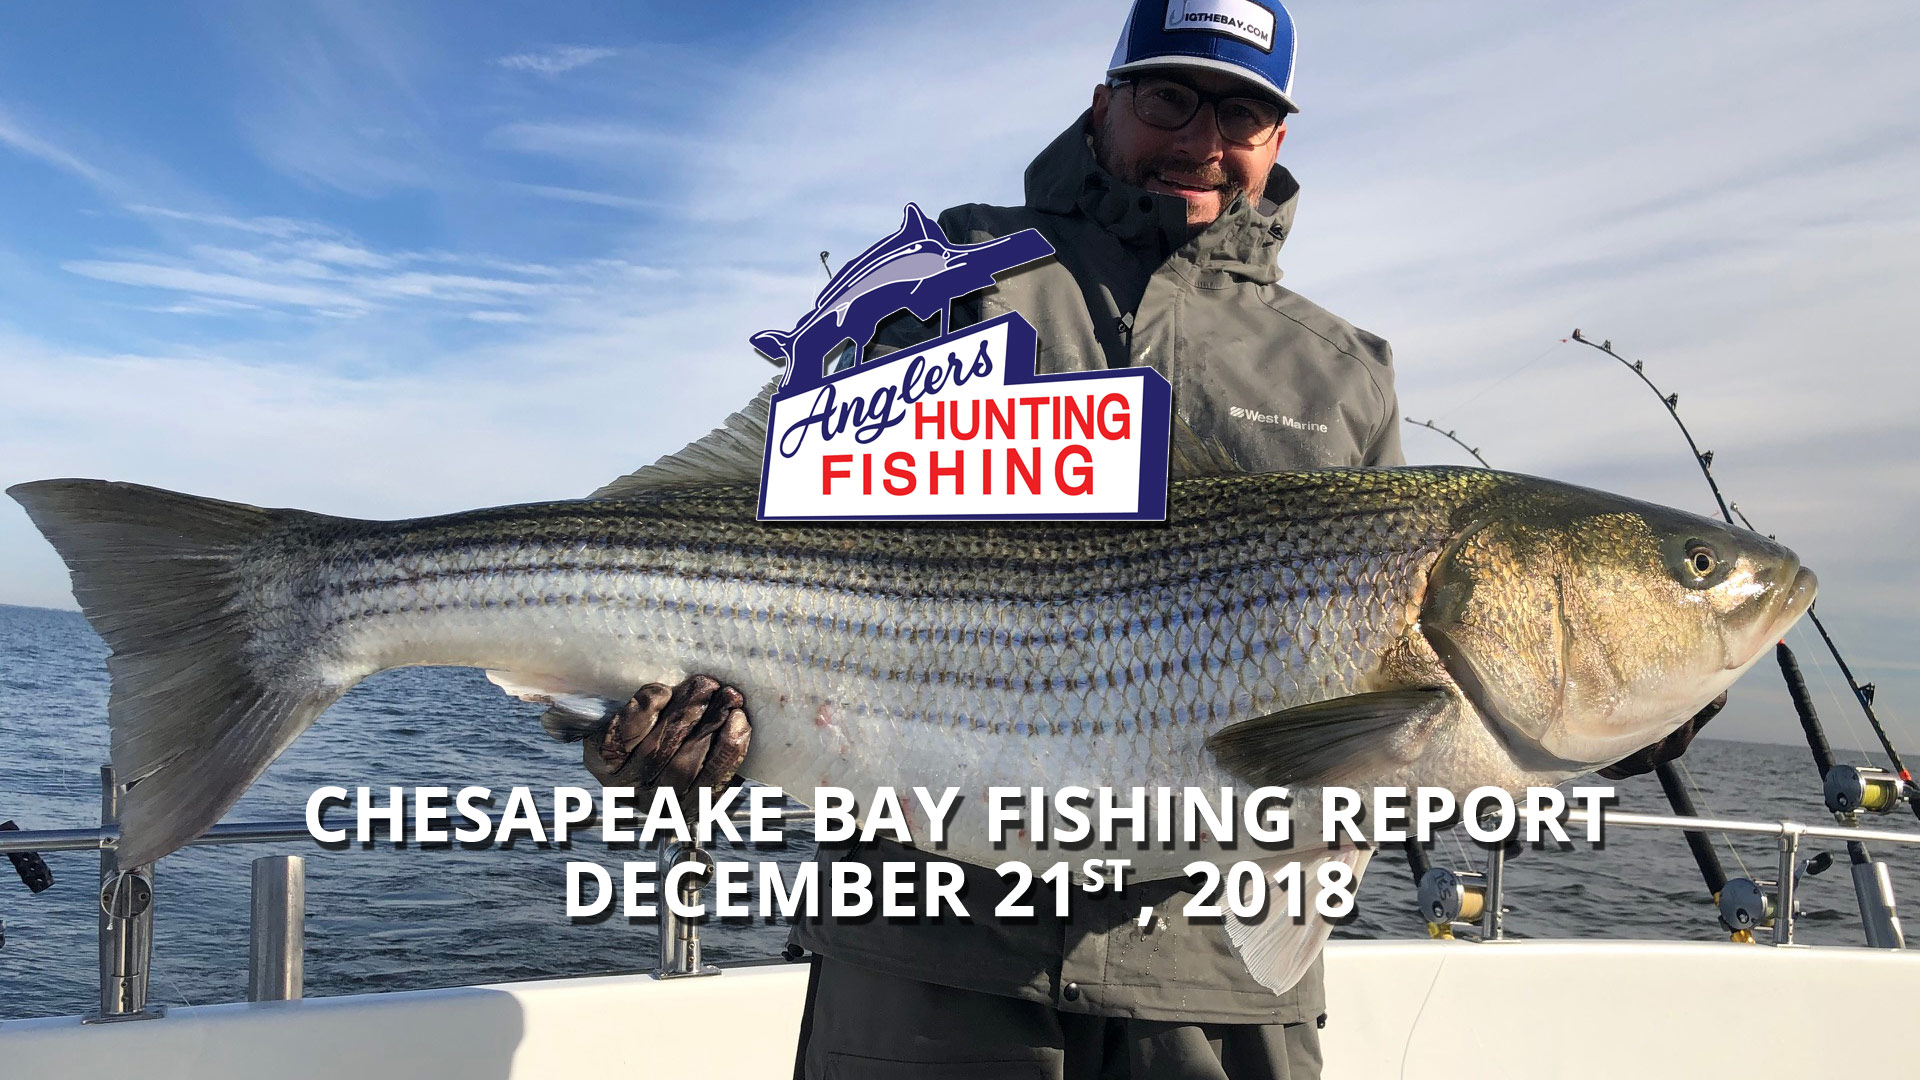 Chesapeake Bay Fishing Report